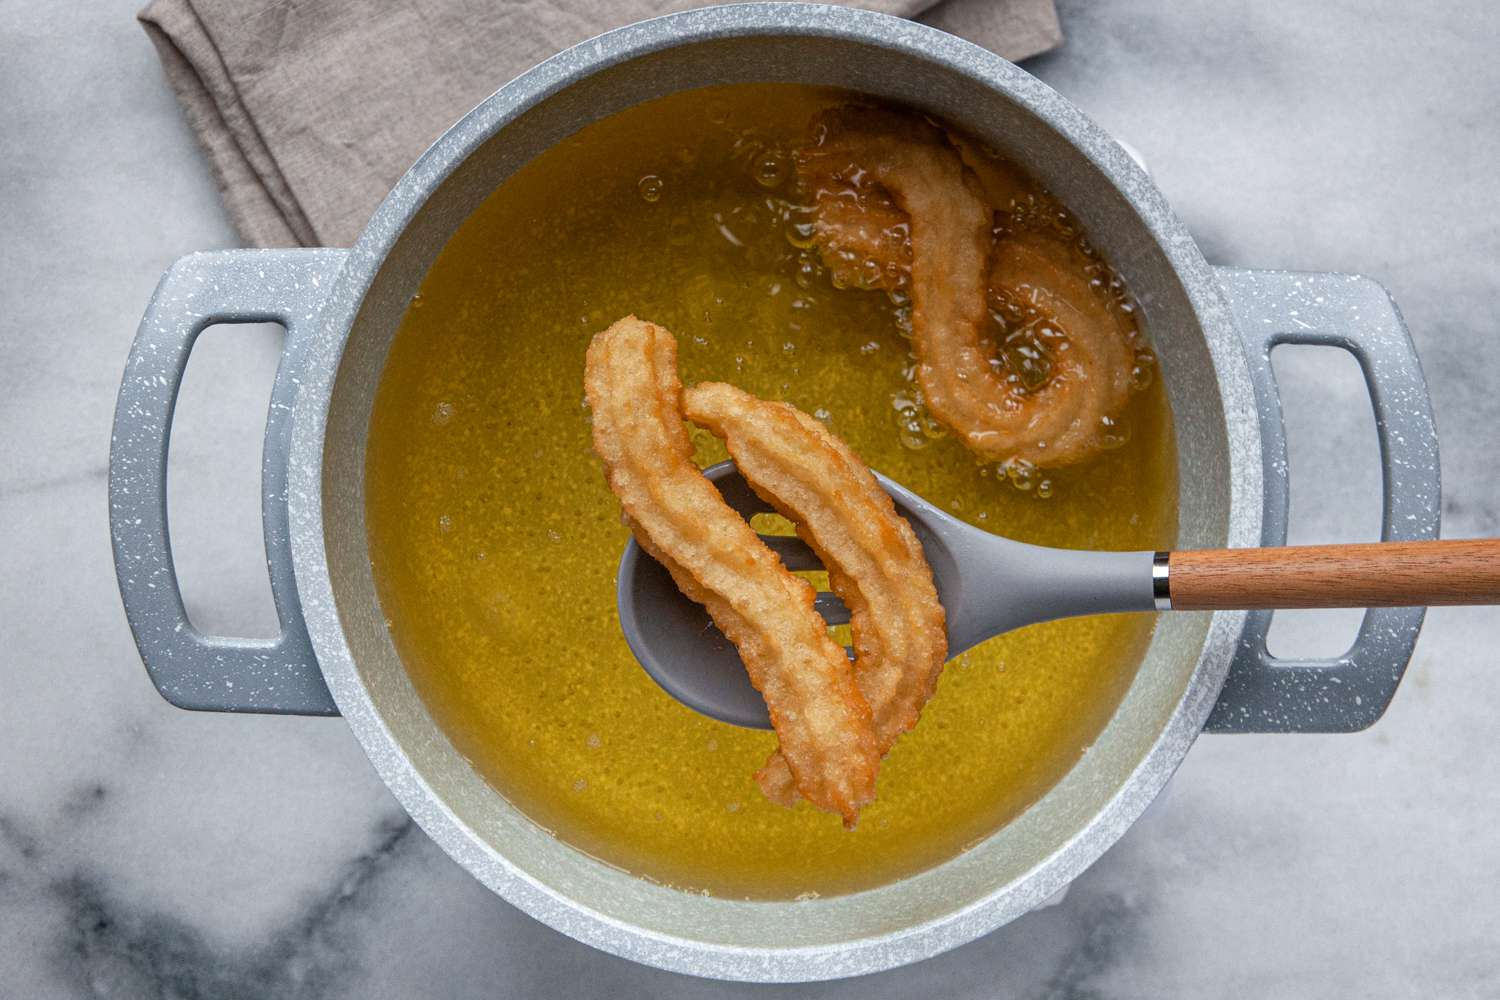 Churros on a slotted spoon above a pot of oil